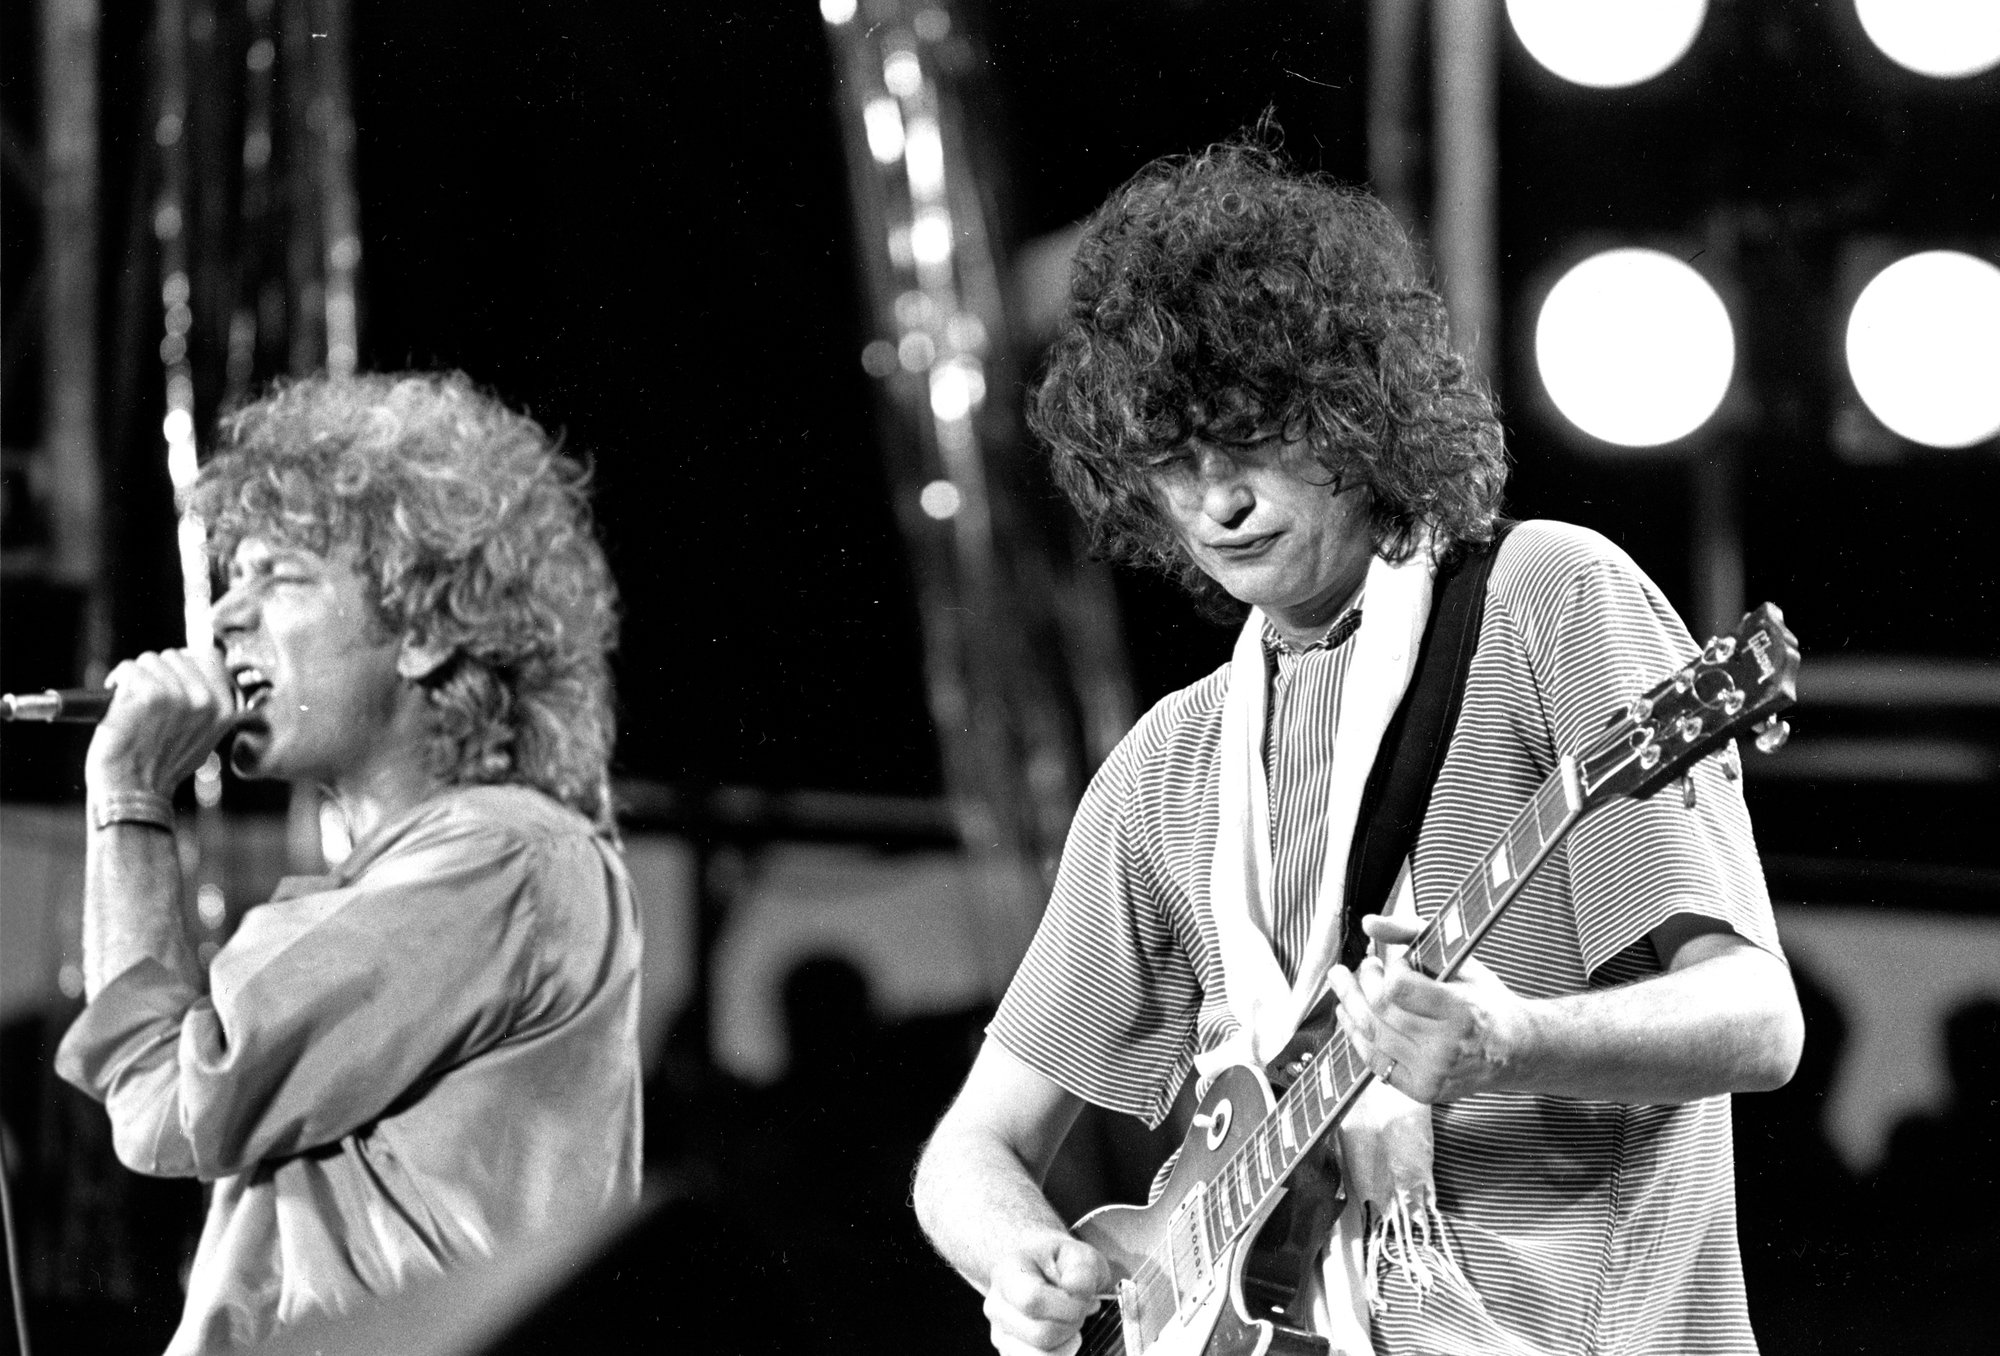 AP FILE PHOTO  Guitarist Jimmy Page of the British rock band Led Zeppelin performs July 13, 1985, at the Live Aid concert at Philadelphia's J.F.K. Stadium.